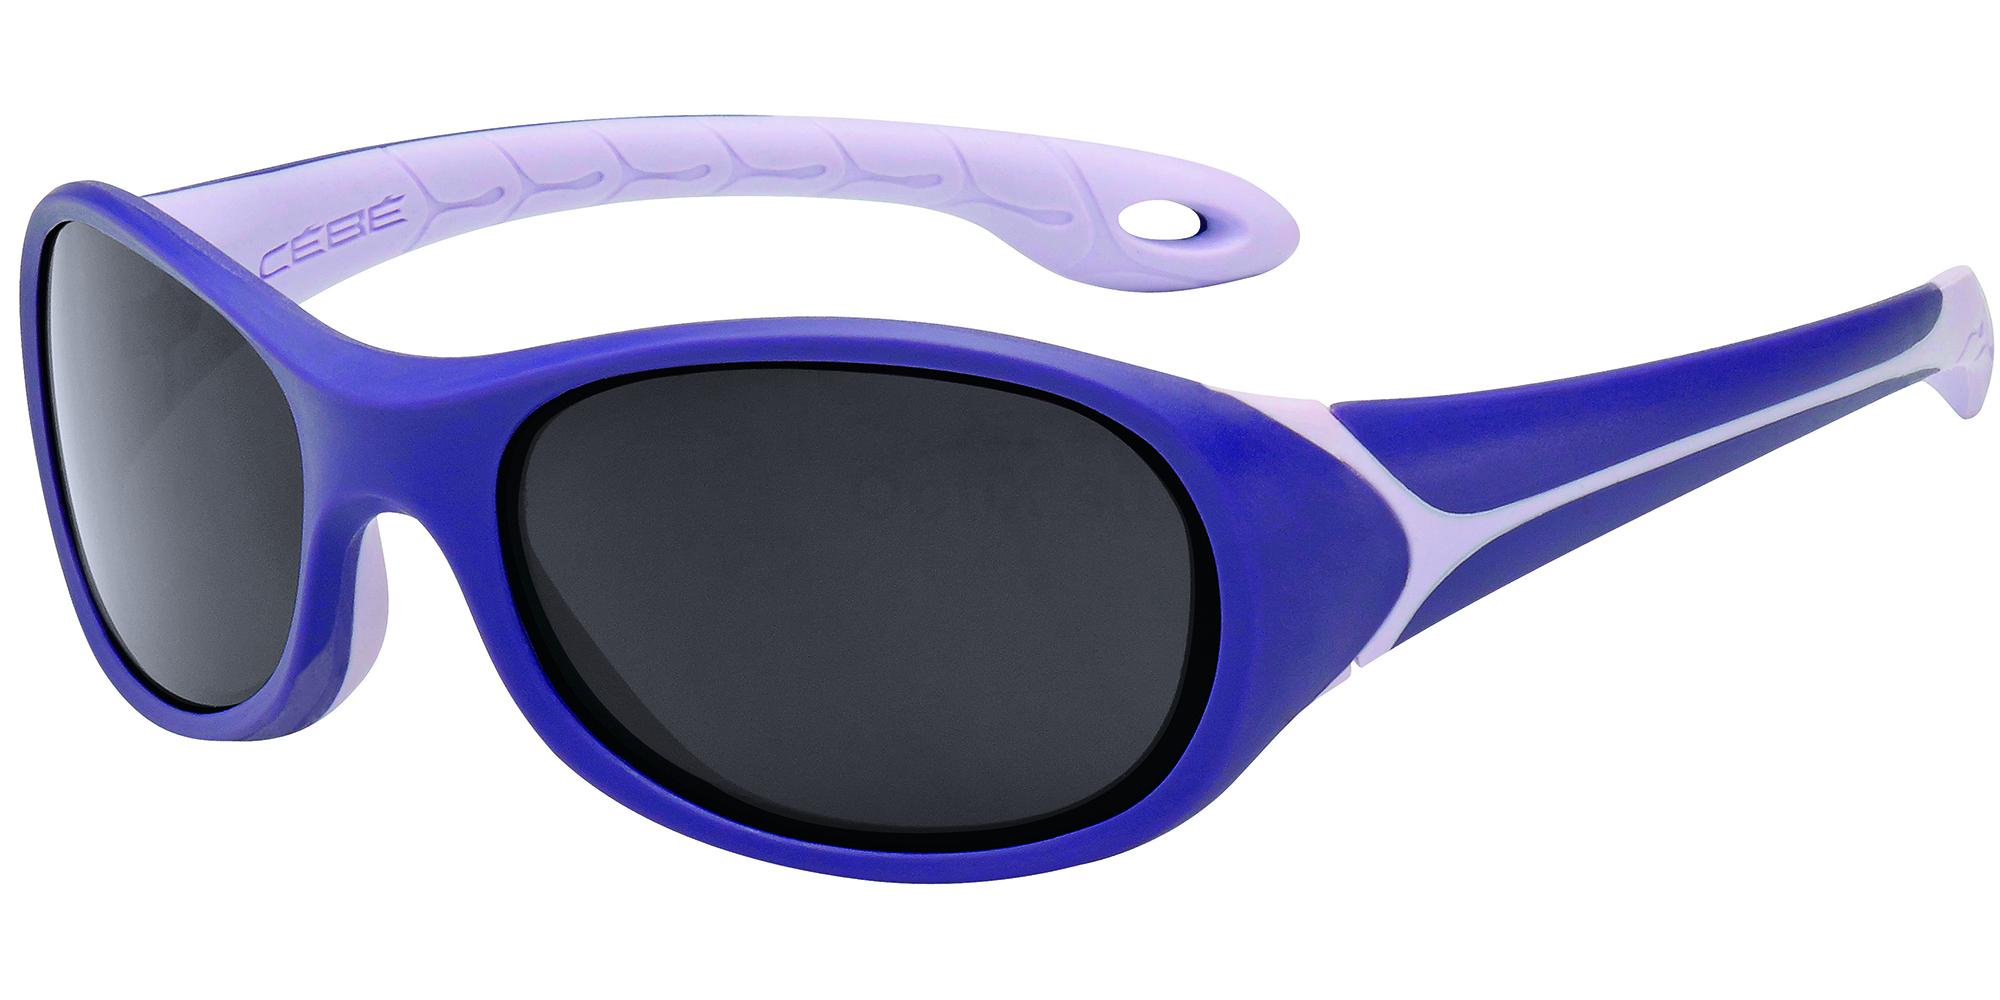 CBFLIP16 Flipper (Age 3-5) Sunglasses, Cebe JUNIOR